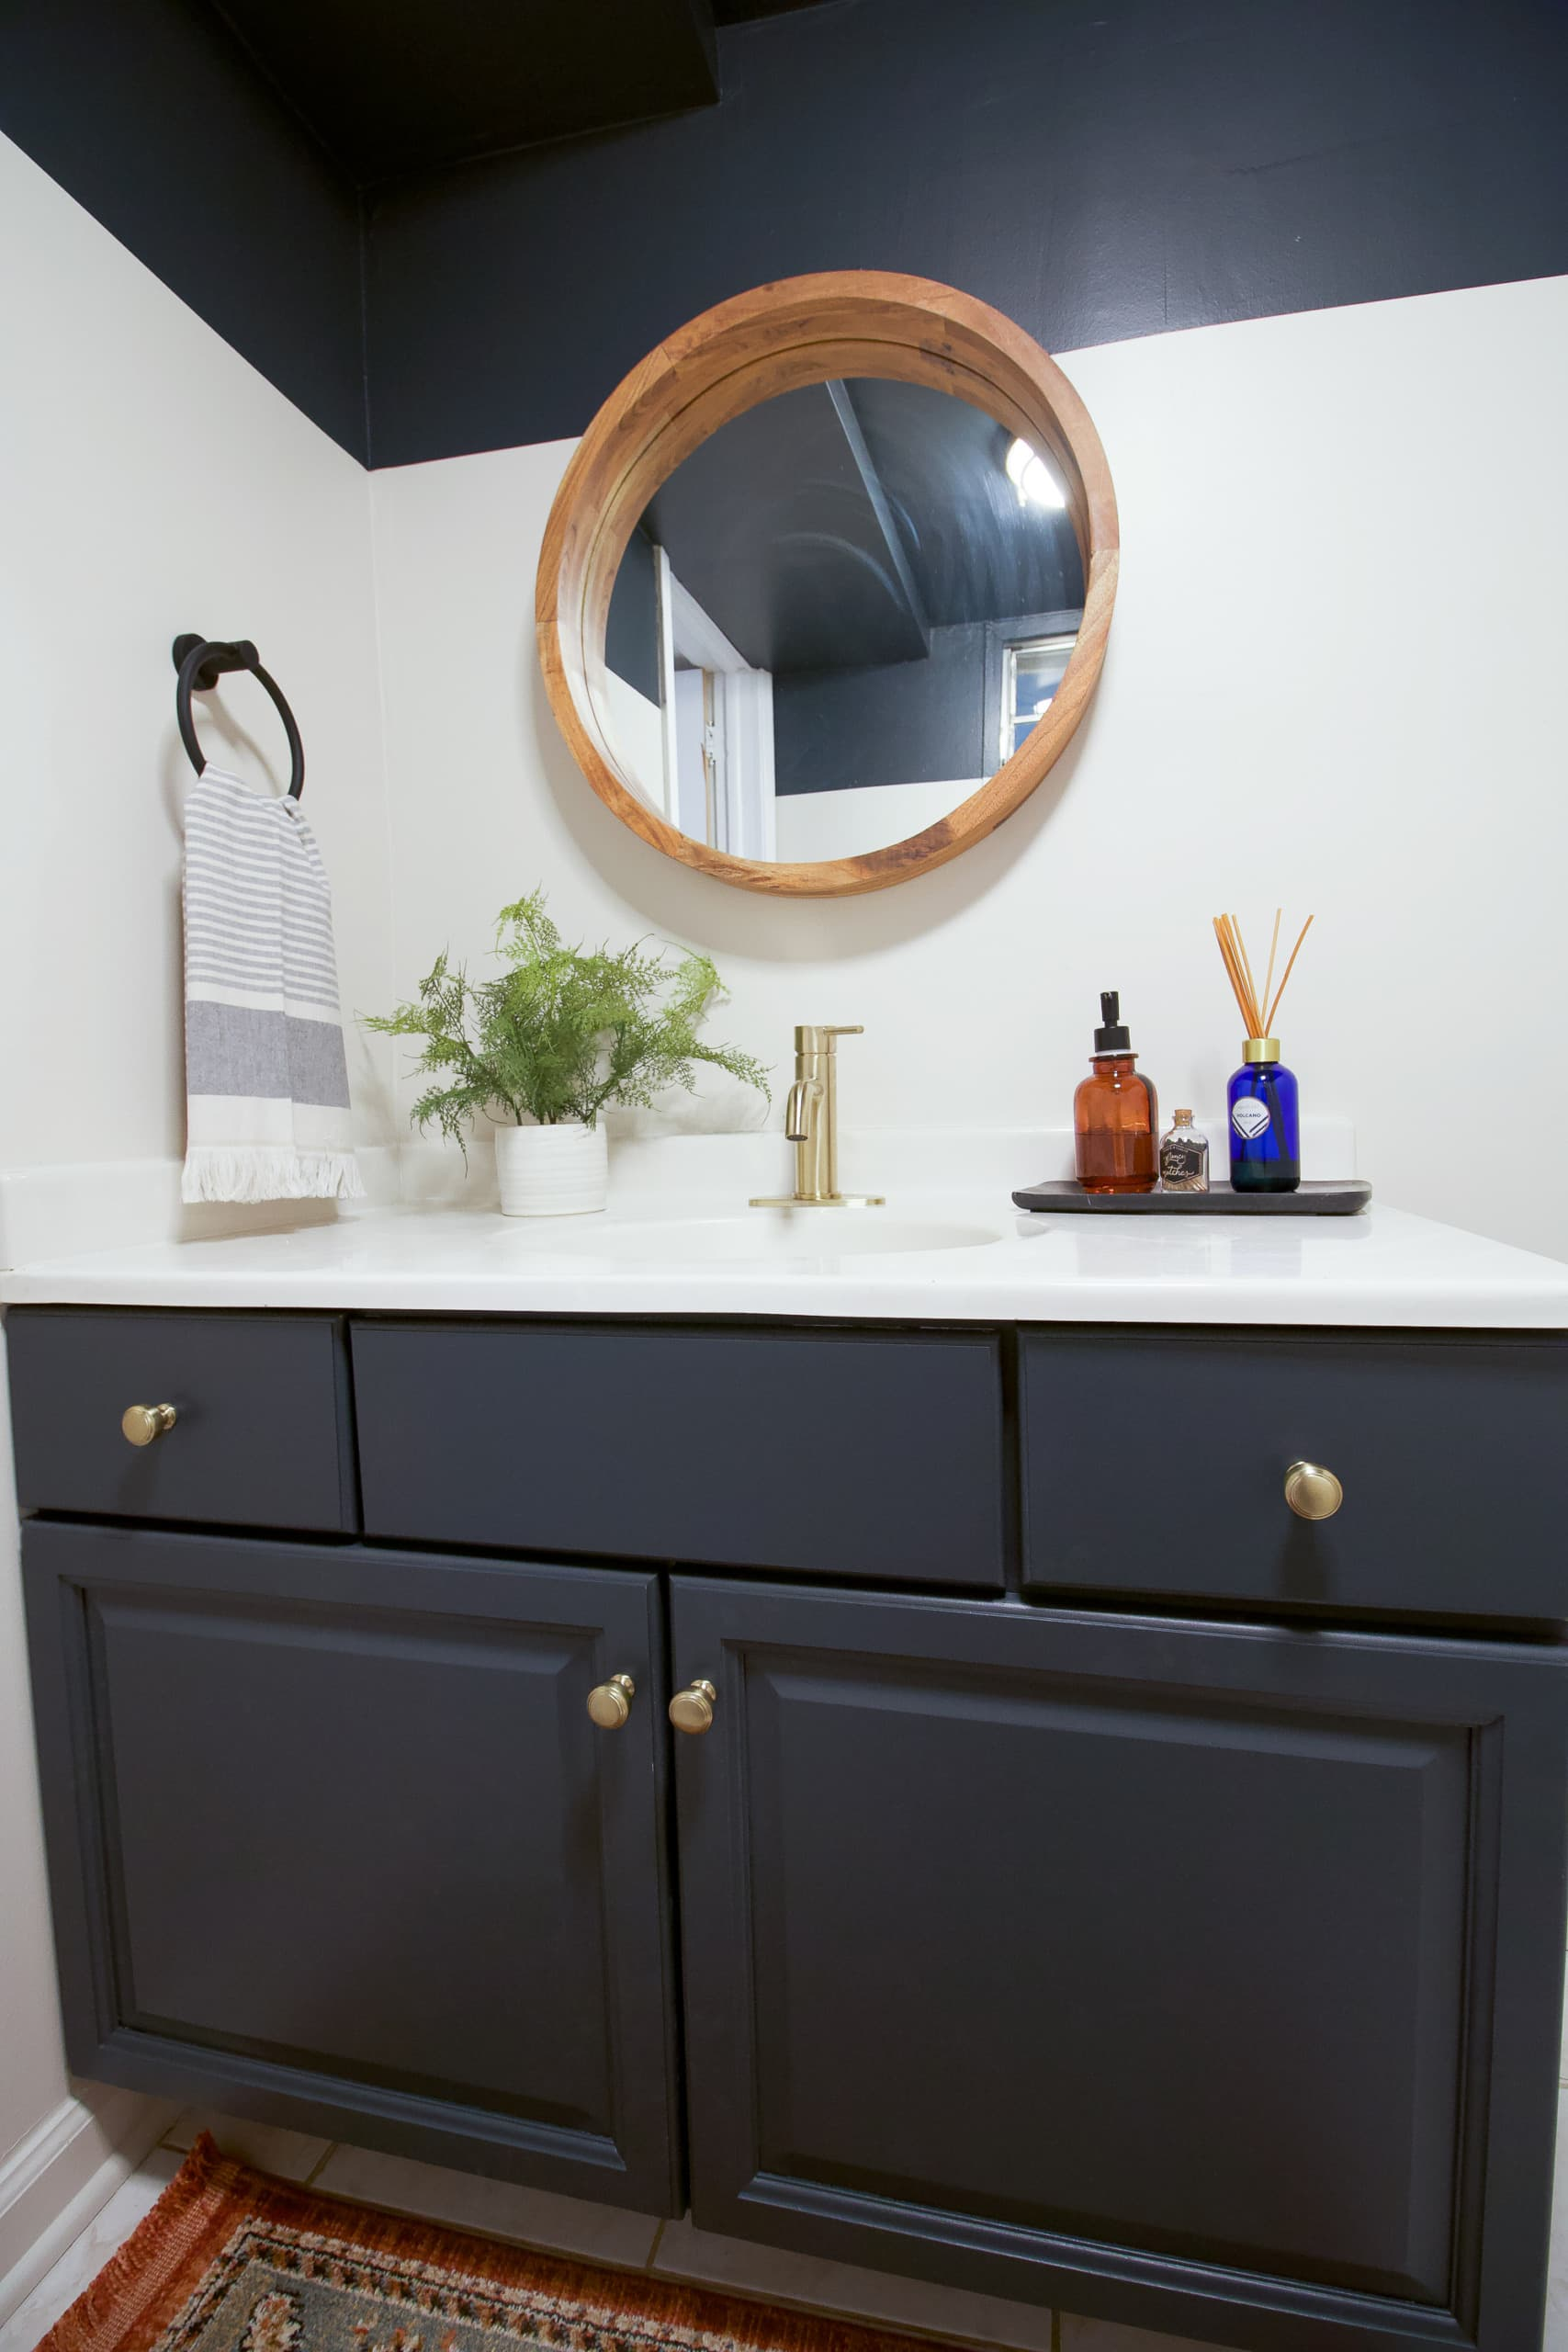 New painted vanity in the basement bathroom